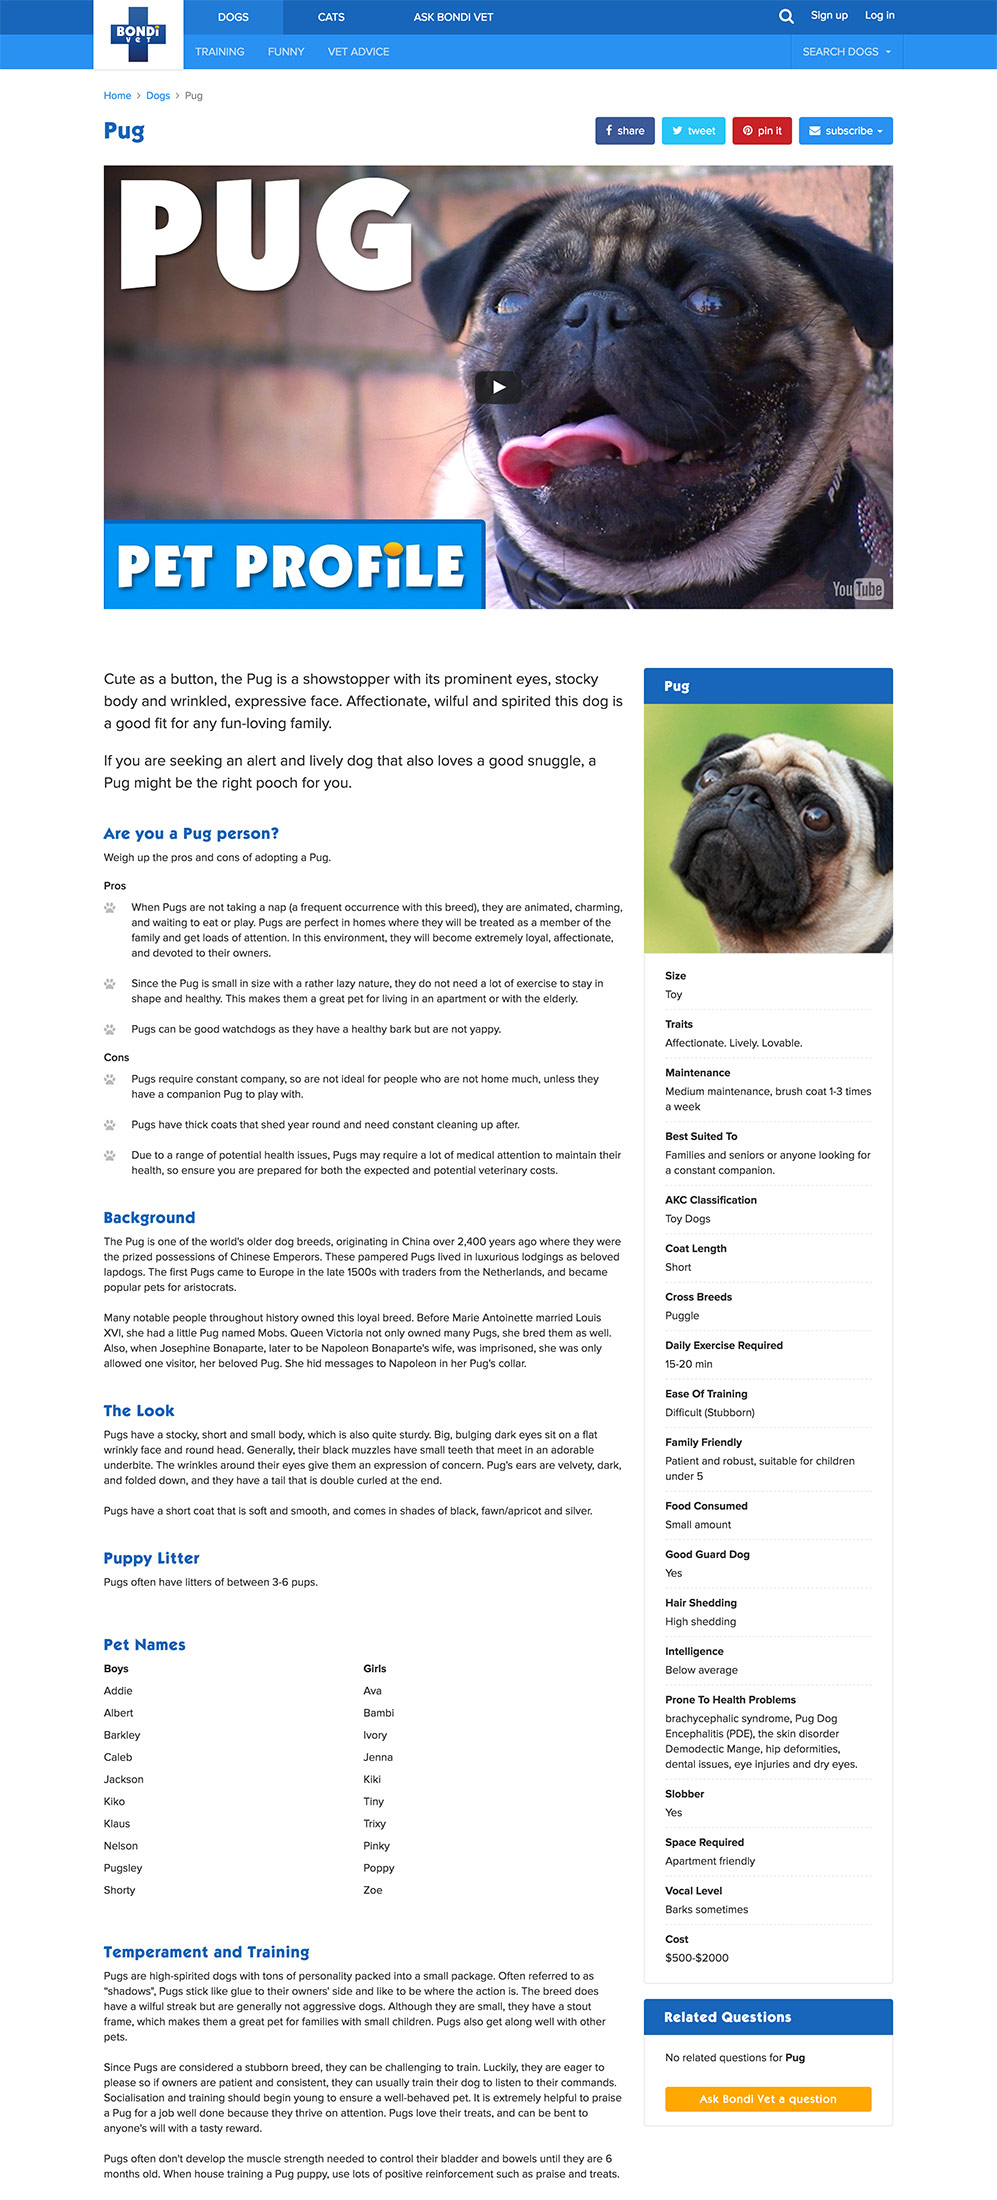 Dog-full-view-page.jpg